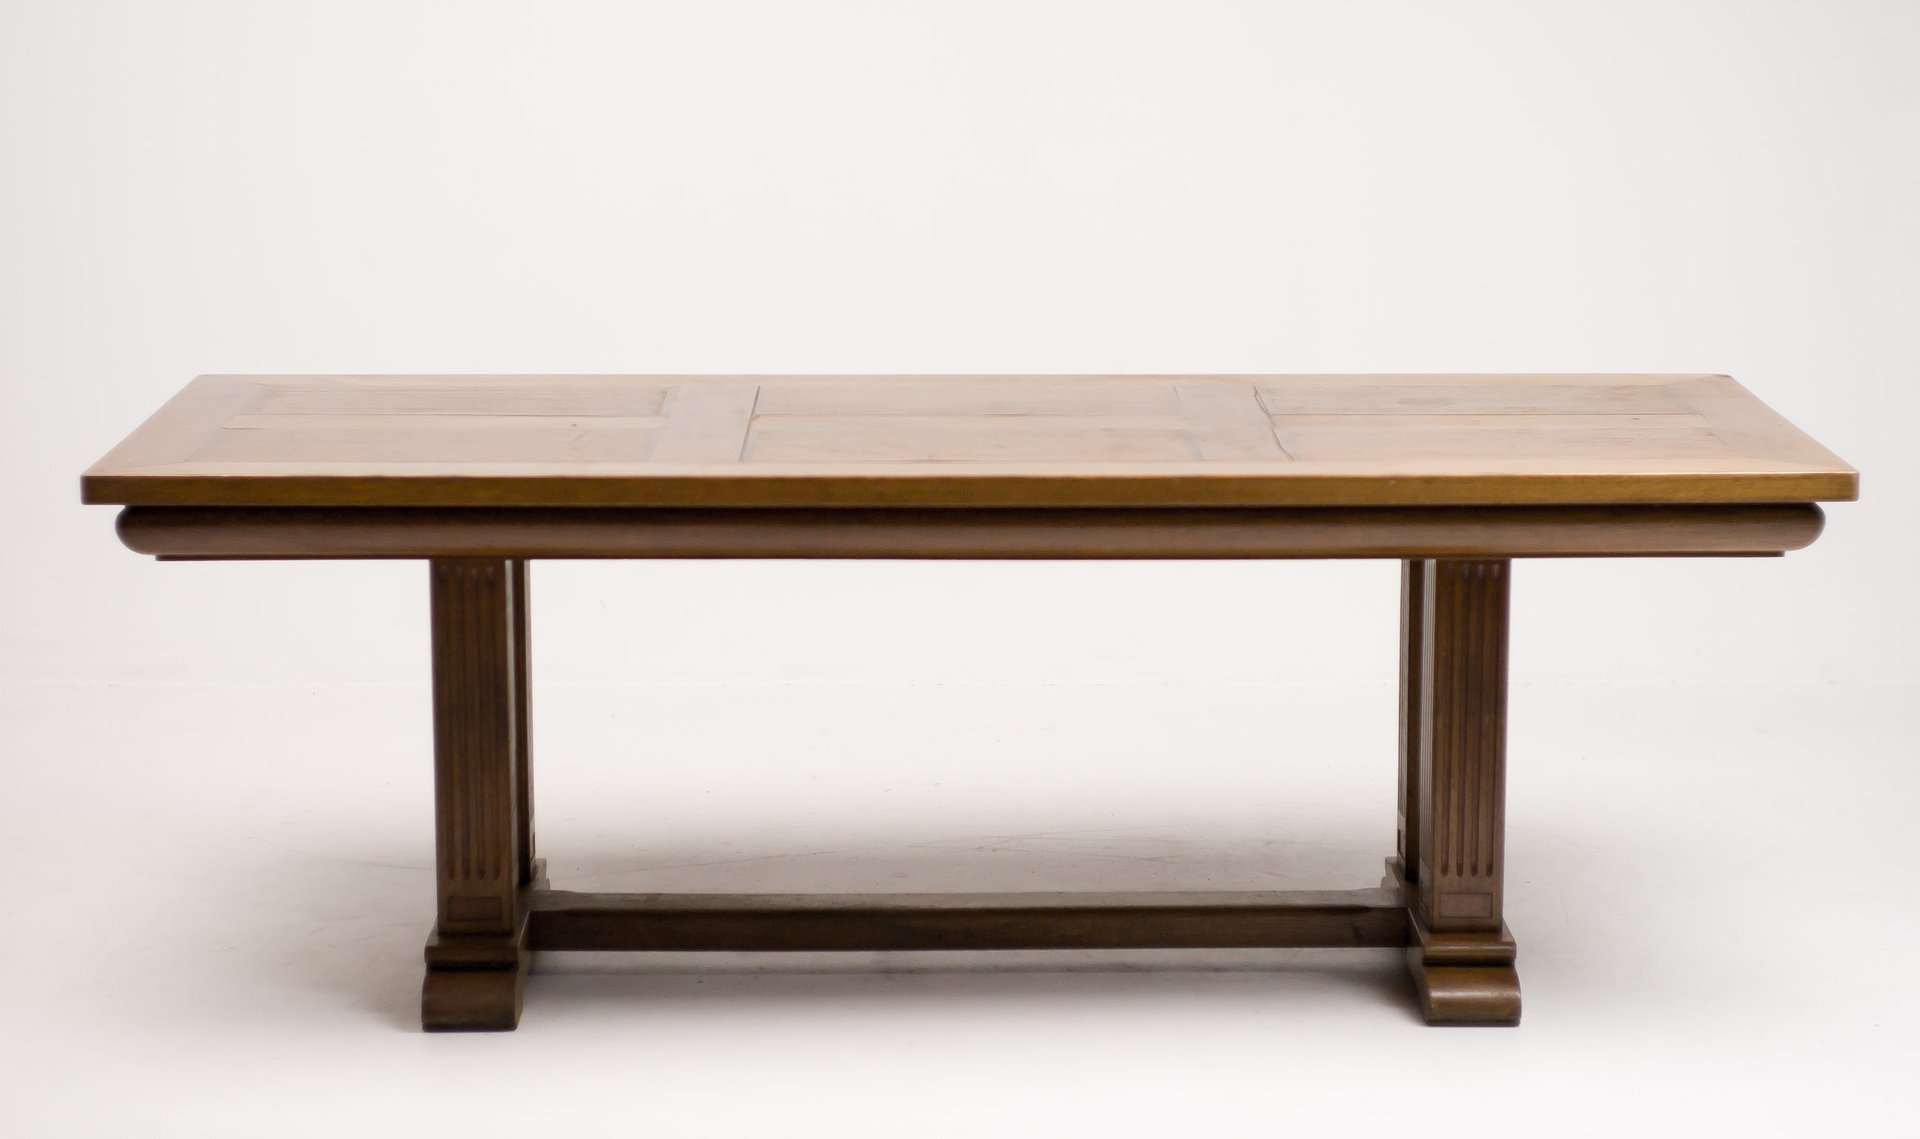 Architectural Oak Dining Table, 1920s for sale at Pamono